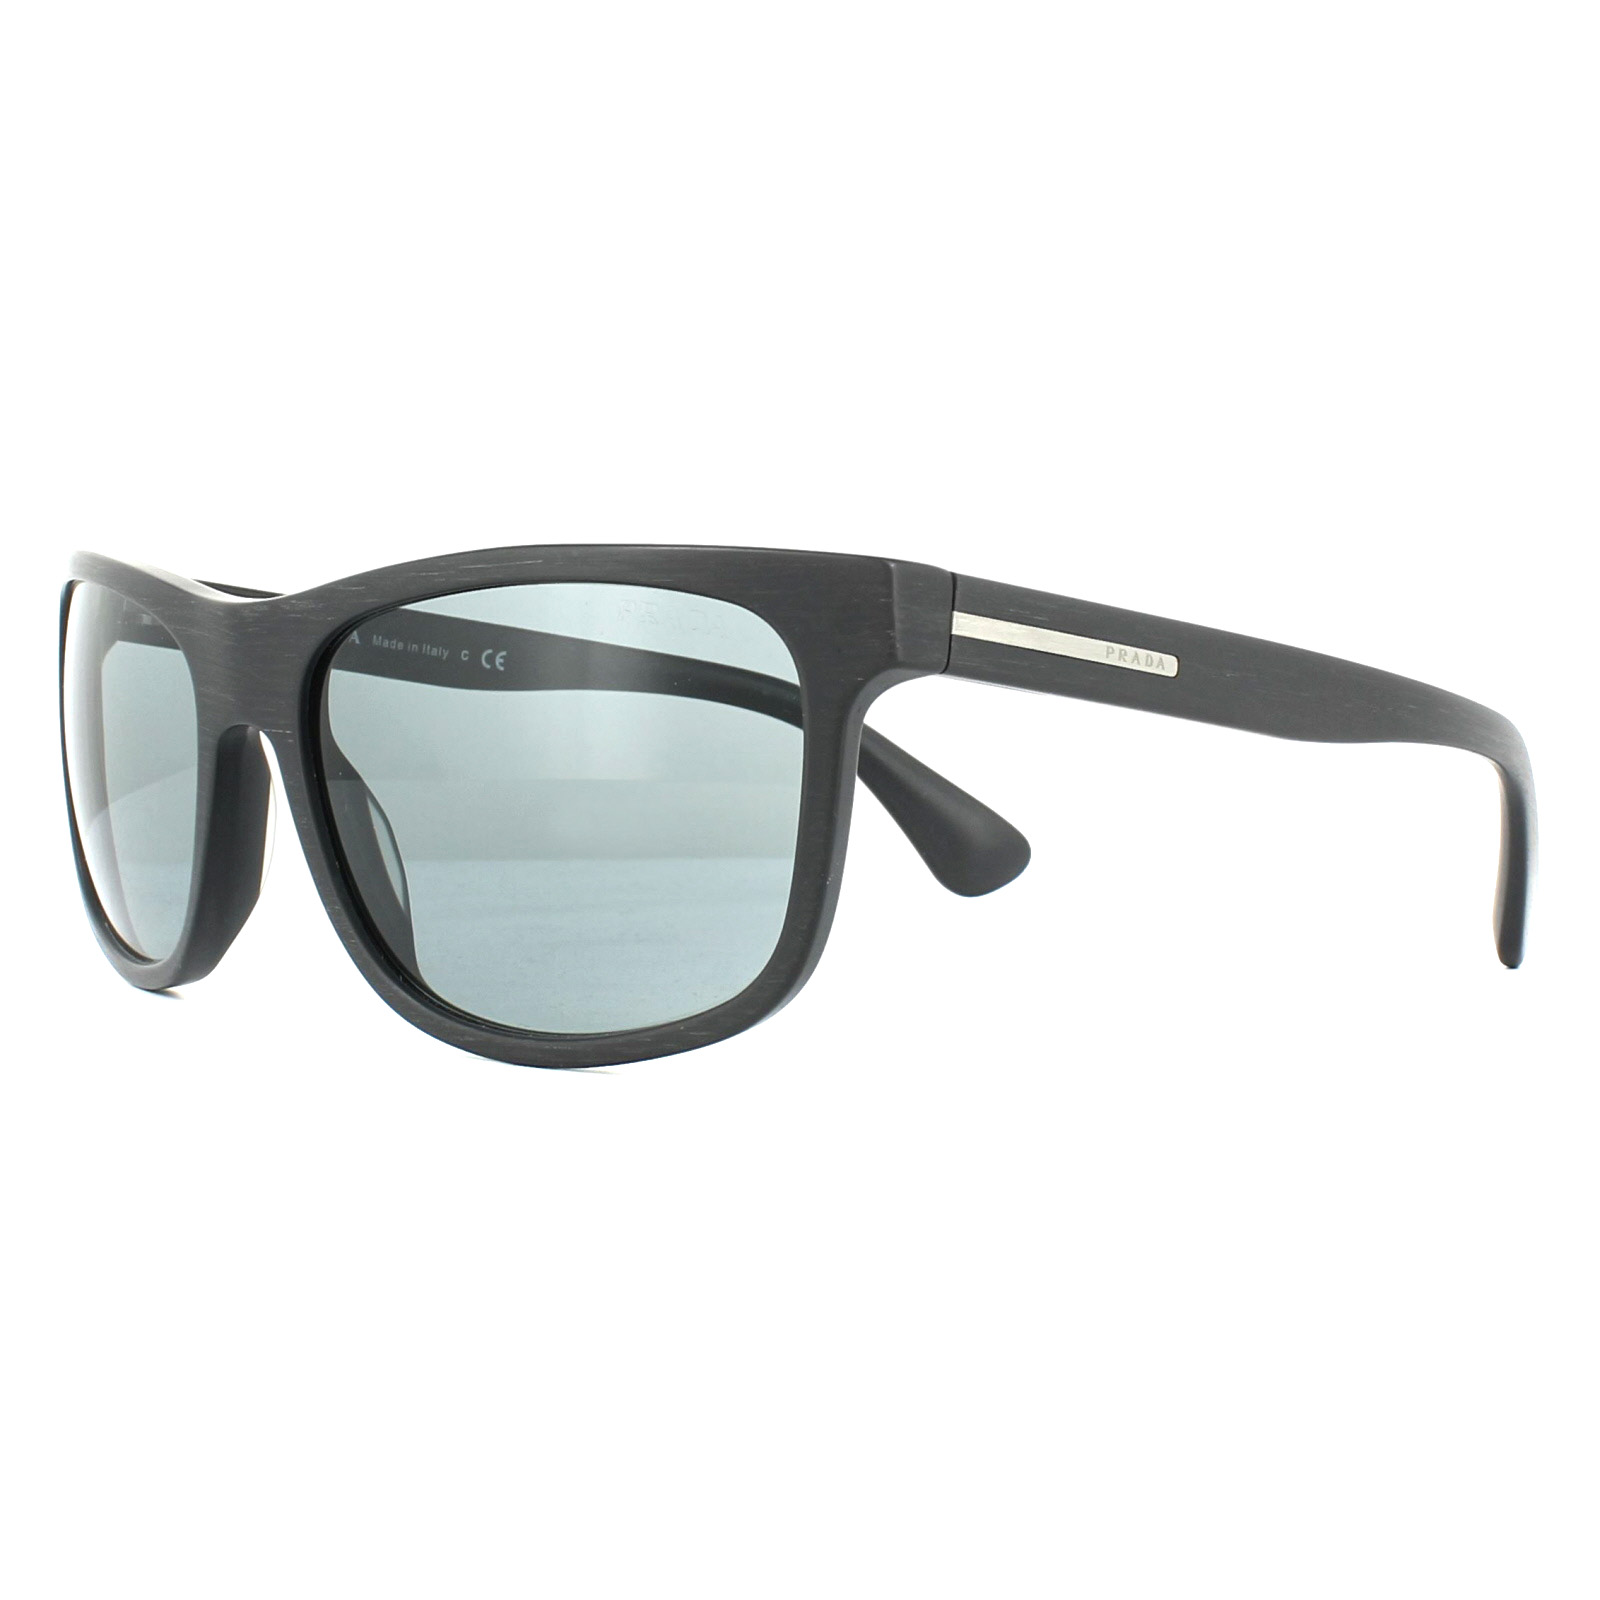 bdc7c630dd8 Sentinel Prada Sunglasses 15RS TV43C2 Matt Brushed Grey Dark Grey